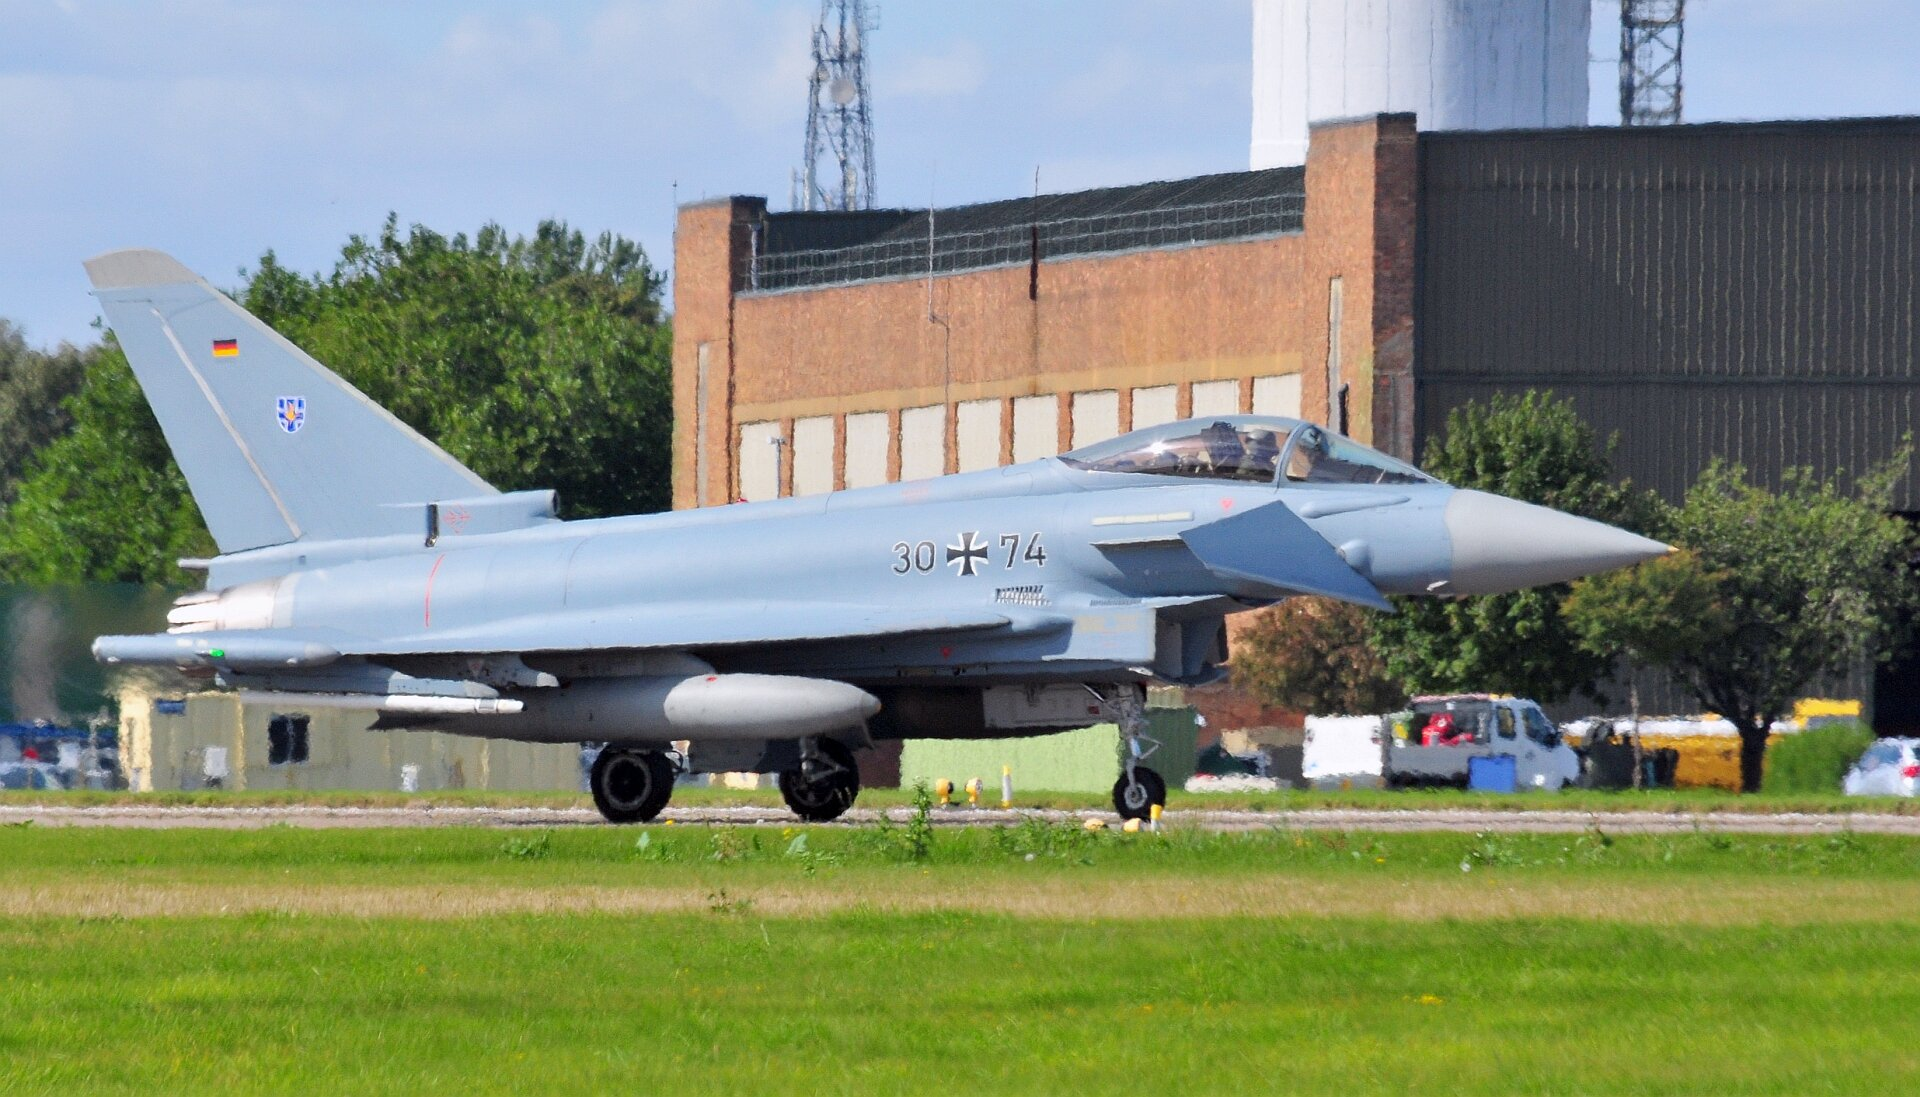 German Air Force Typhoon 3074 taxiing out at Waddington 13th September